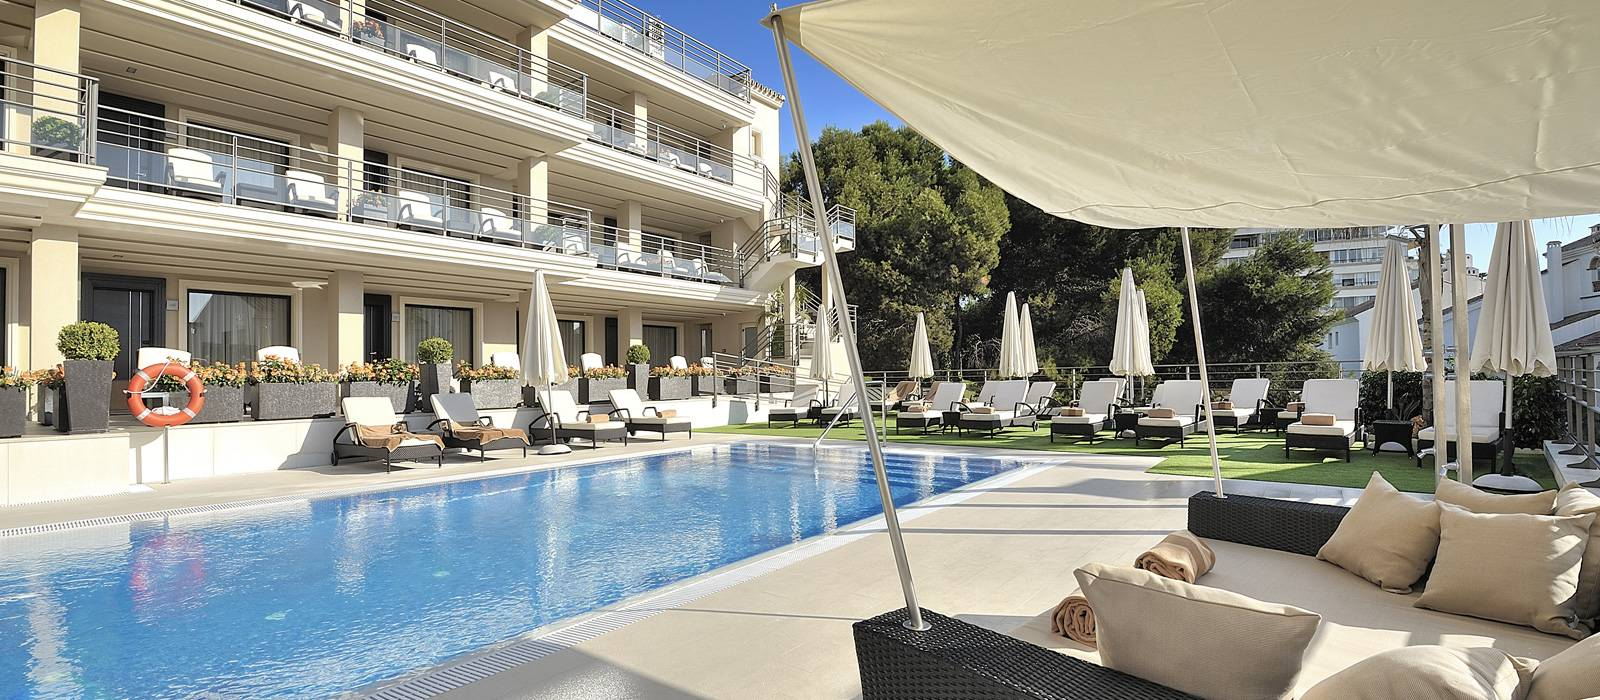 Services Hotel Vincci Aleysa Boutique&Spa - Outdoor pool and outdoor pool with hydromassage